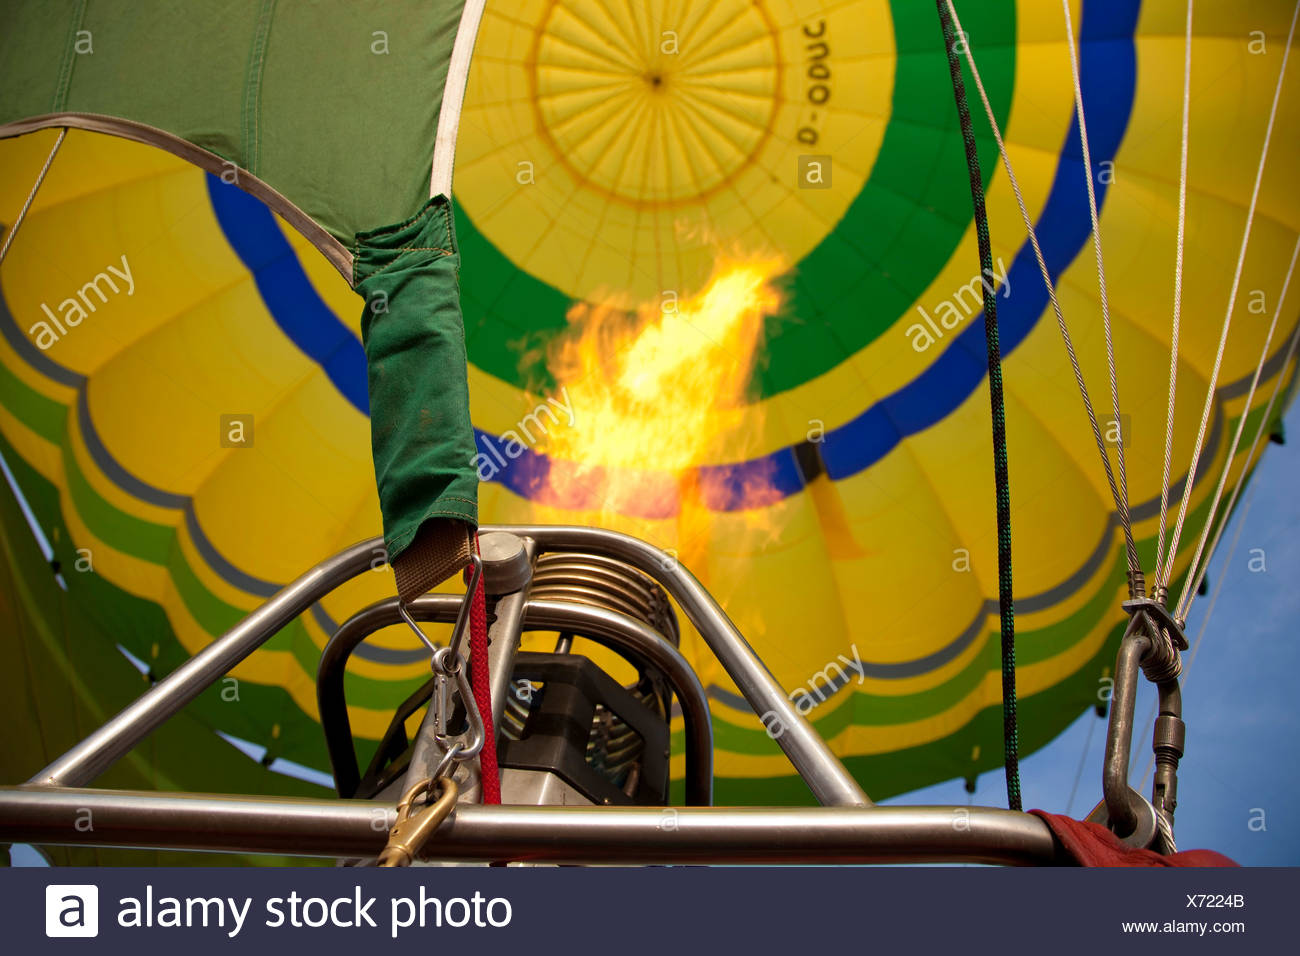 view into the envelope of a hot-air balloon, with the flame of the burner - Stock Image